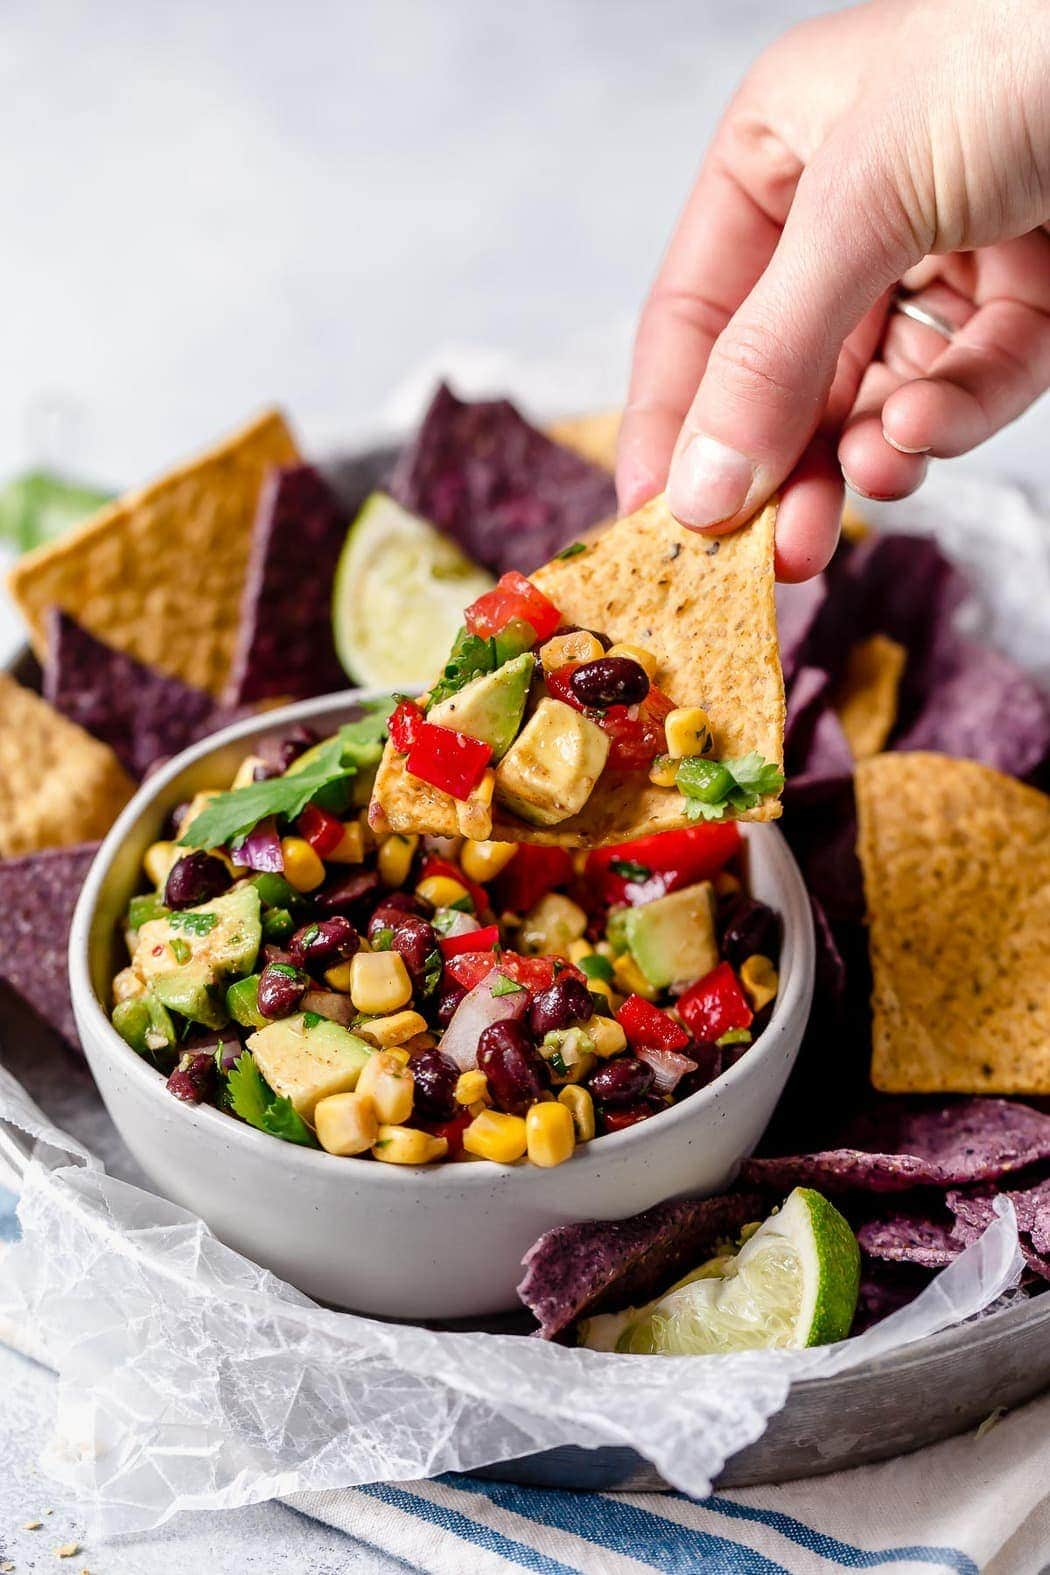 Photo of Black Bean & Corn Salsa with Avocado in a white bowl surrounded by blue and white corn tortilla chips. Showing a hand picking up a chip with a scoop of salsa on it.